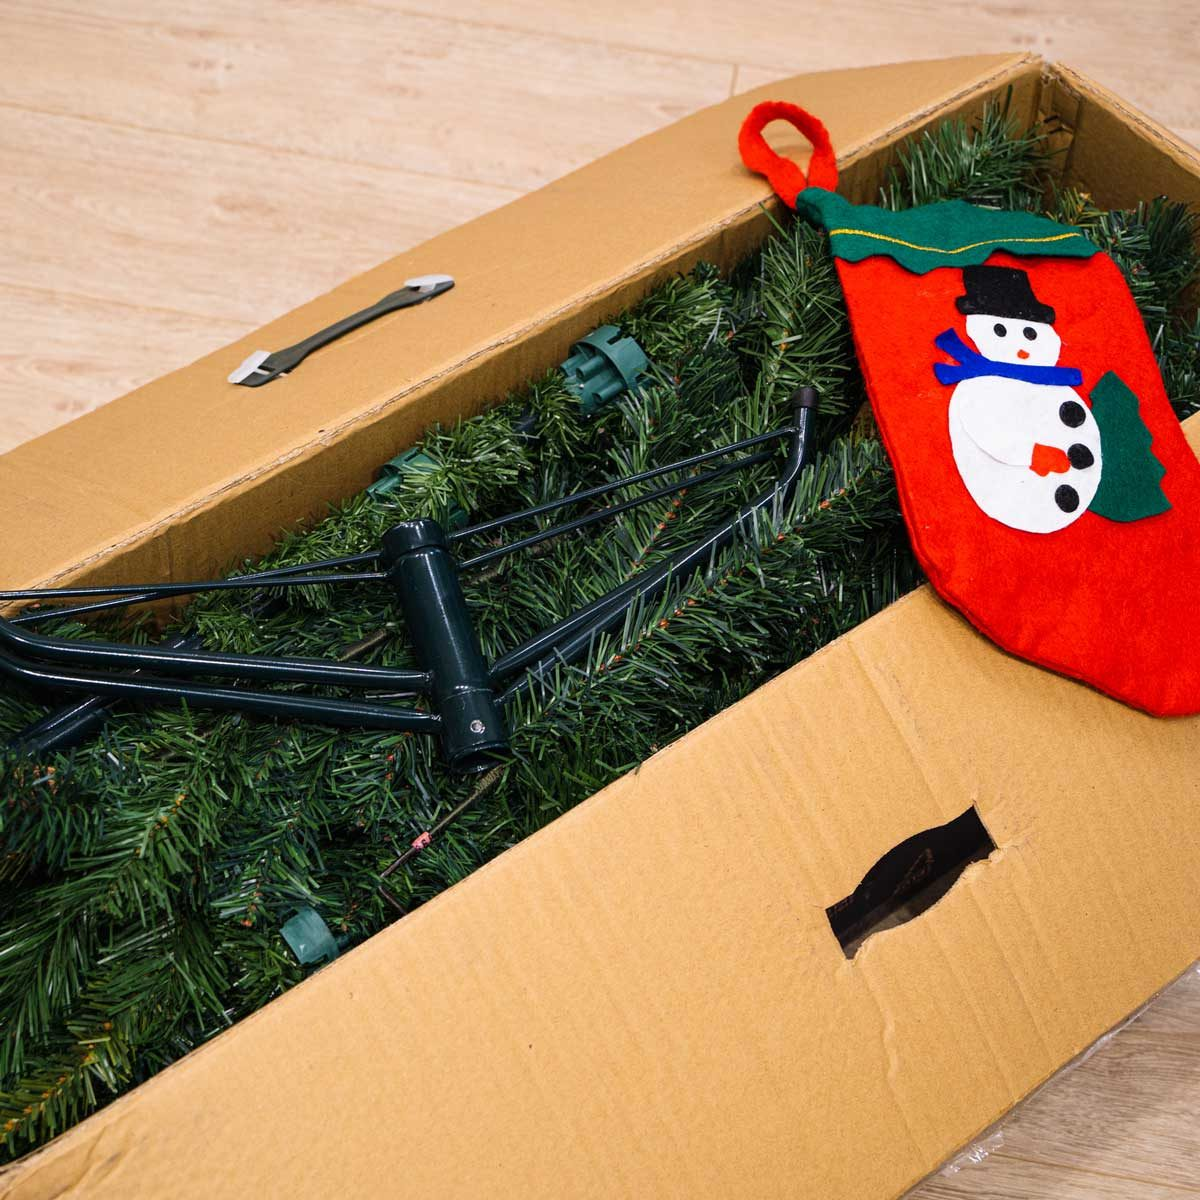 Disassembled Christmas tree